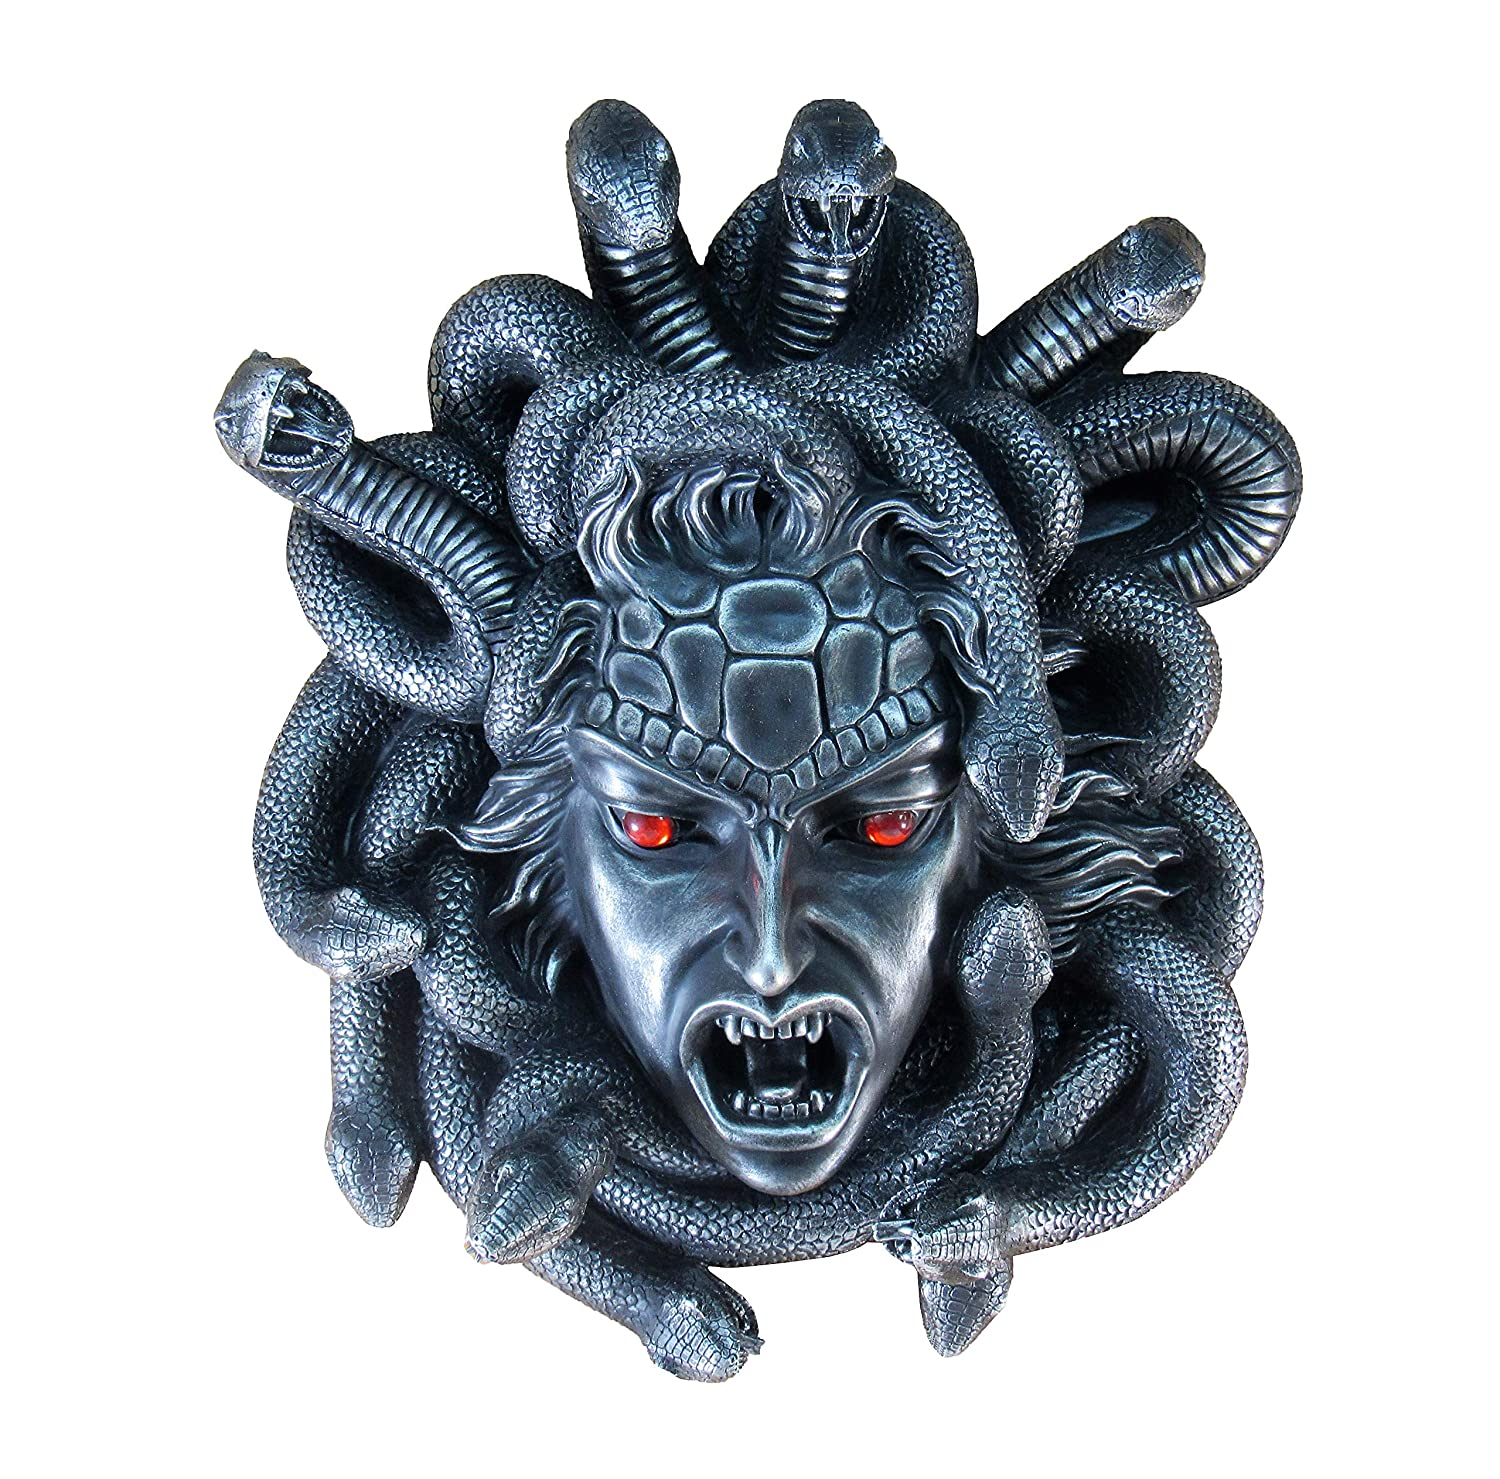 Medusa Decorative Figurine Collectible Wall Decor Figurine in Fantasy Statues Sculptures Wall Mount Wall D cor Gifts For your Home